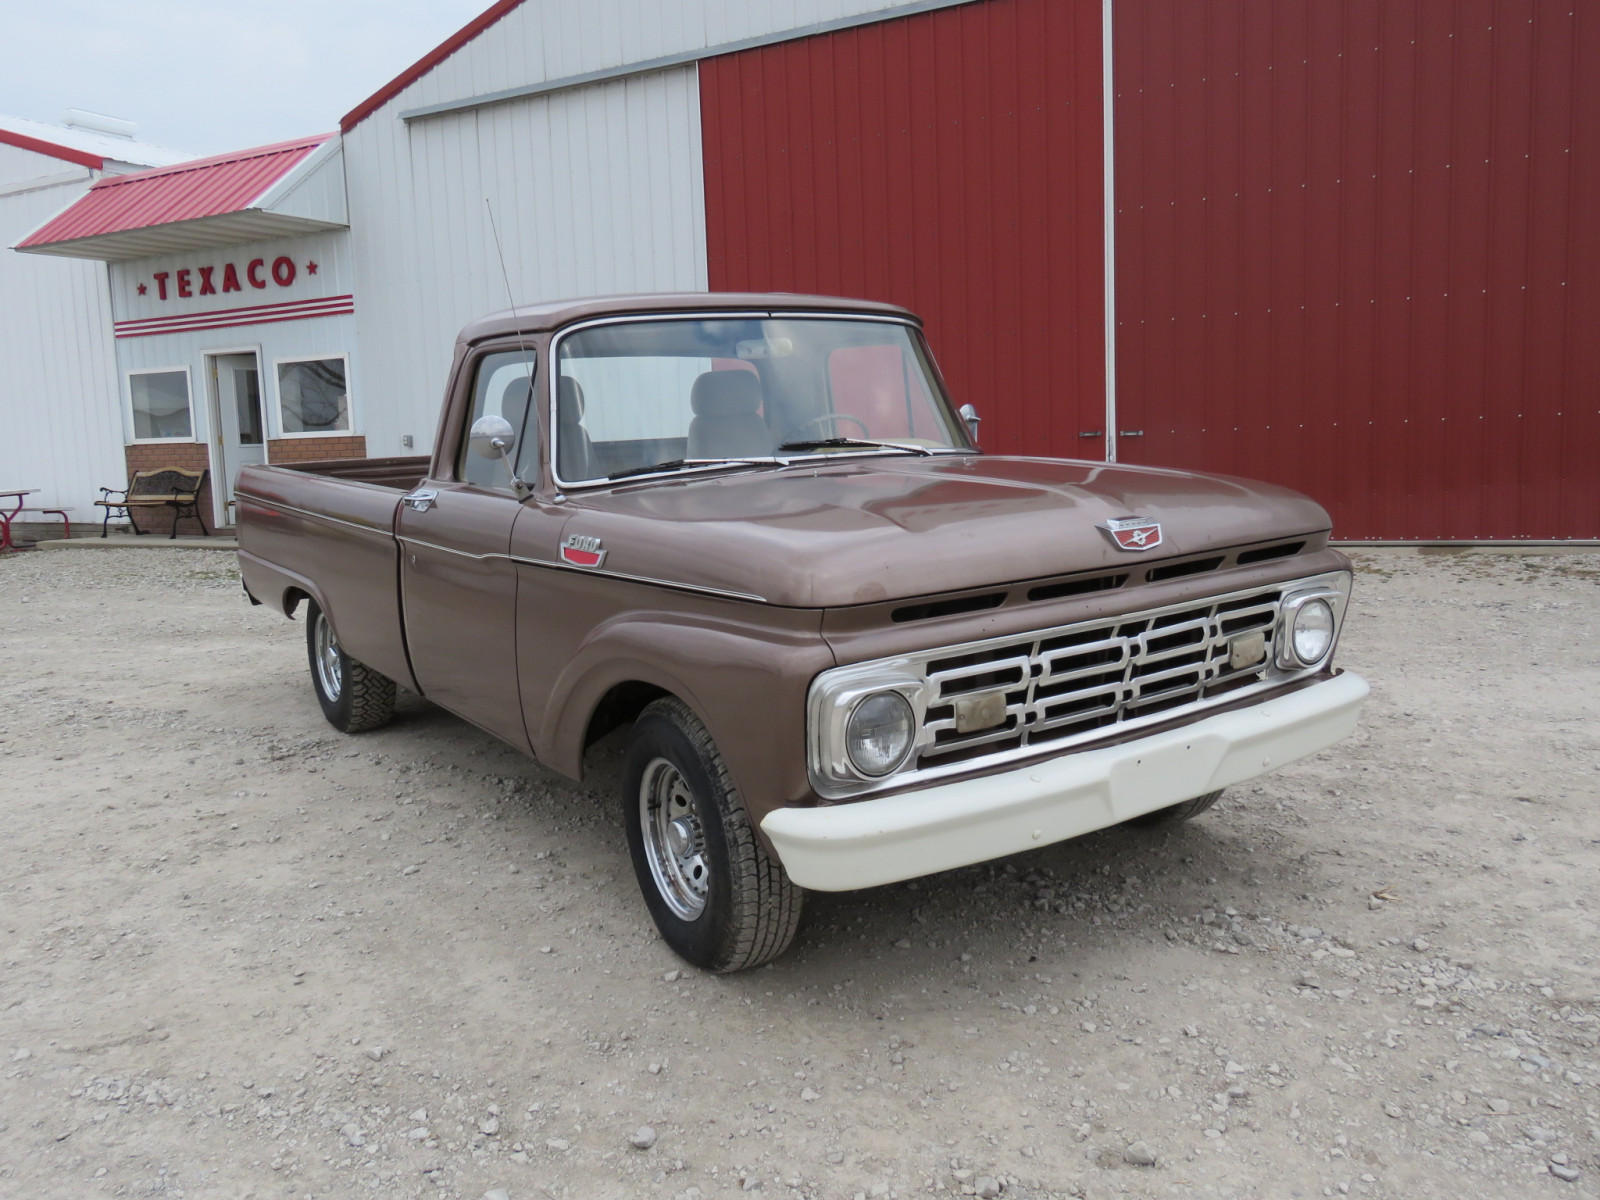 1964 Ford F100 Custom Cab Pickup - Image 1